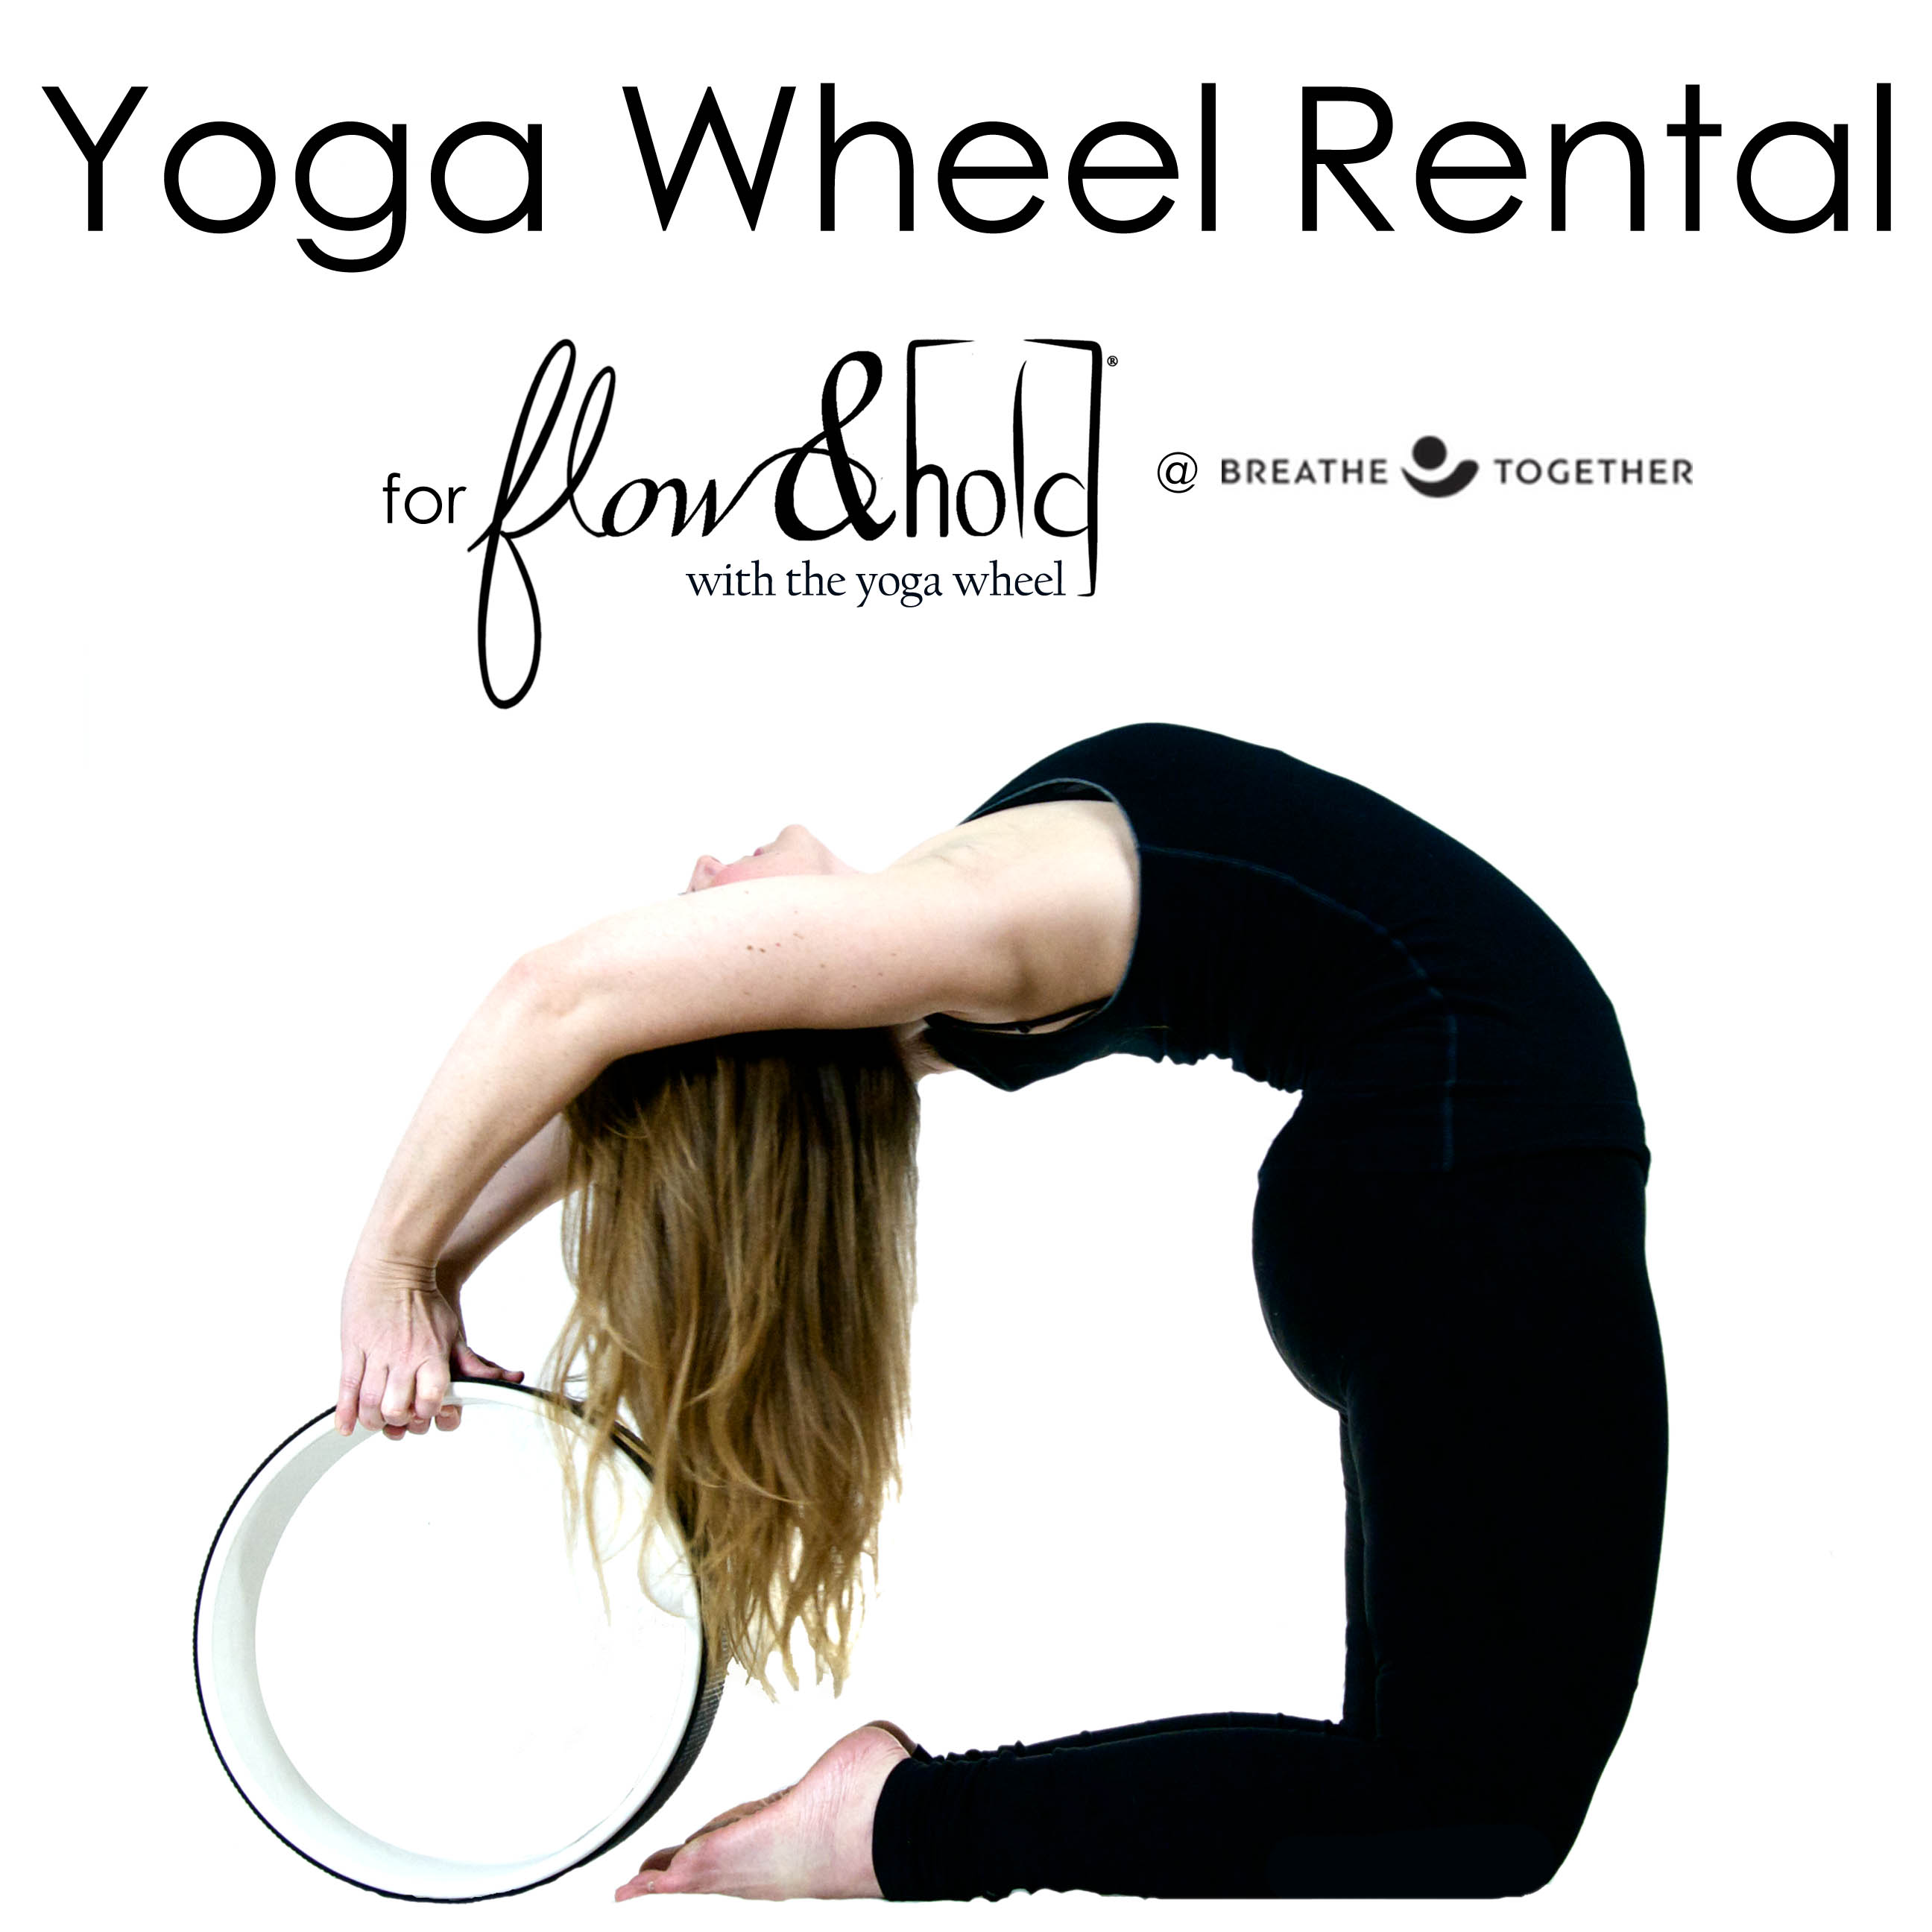 Yoga Wheel Rental